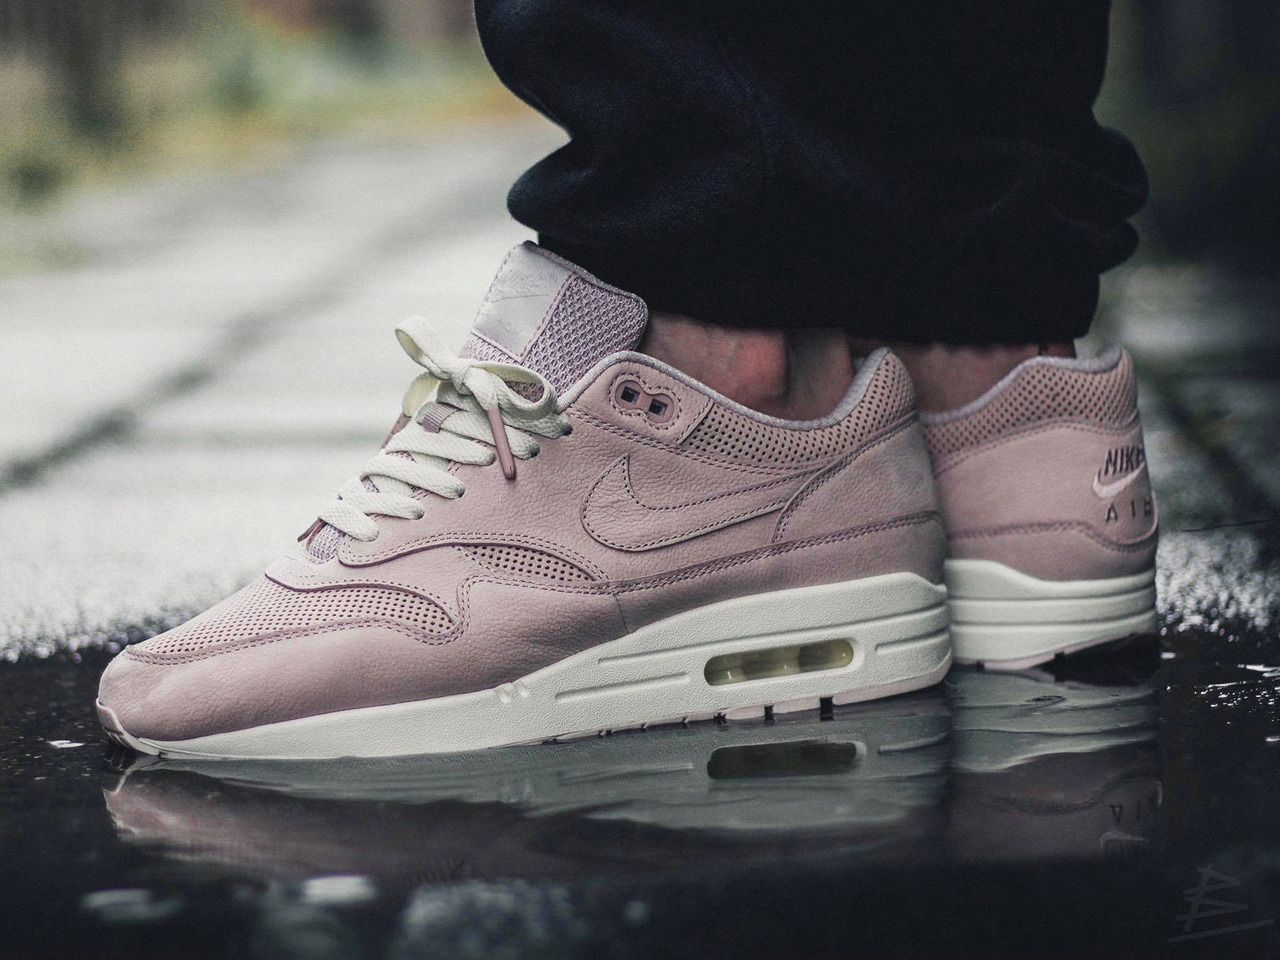 new product 3884b 94bd0 Nike wmns Air Max 1 Pinnacle - Silt Red - 2017 (by maikelboeve) Sole Trees  makes shoe trees designed solely for the makeup of tennis shoes  Shoetrees  ...